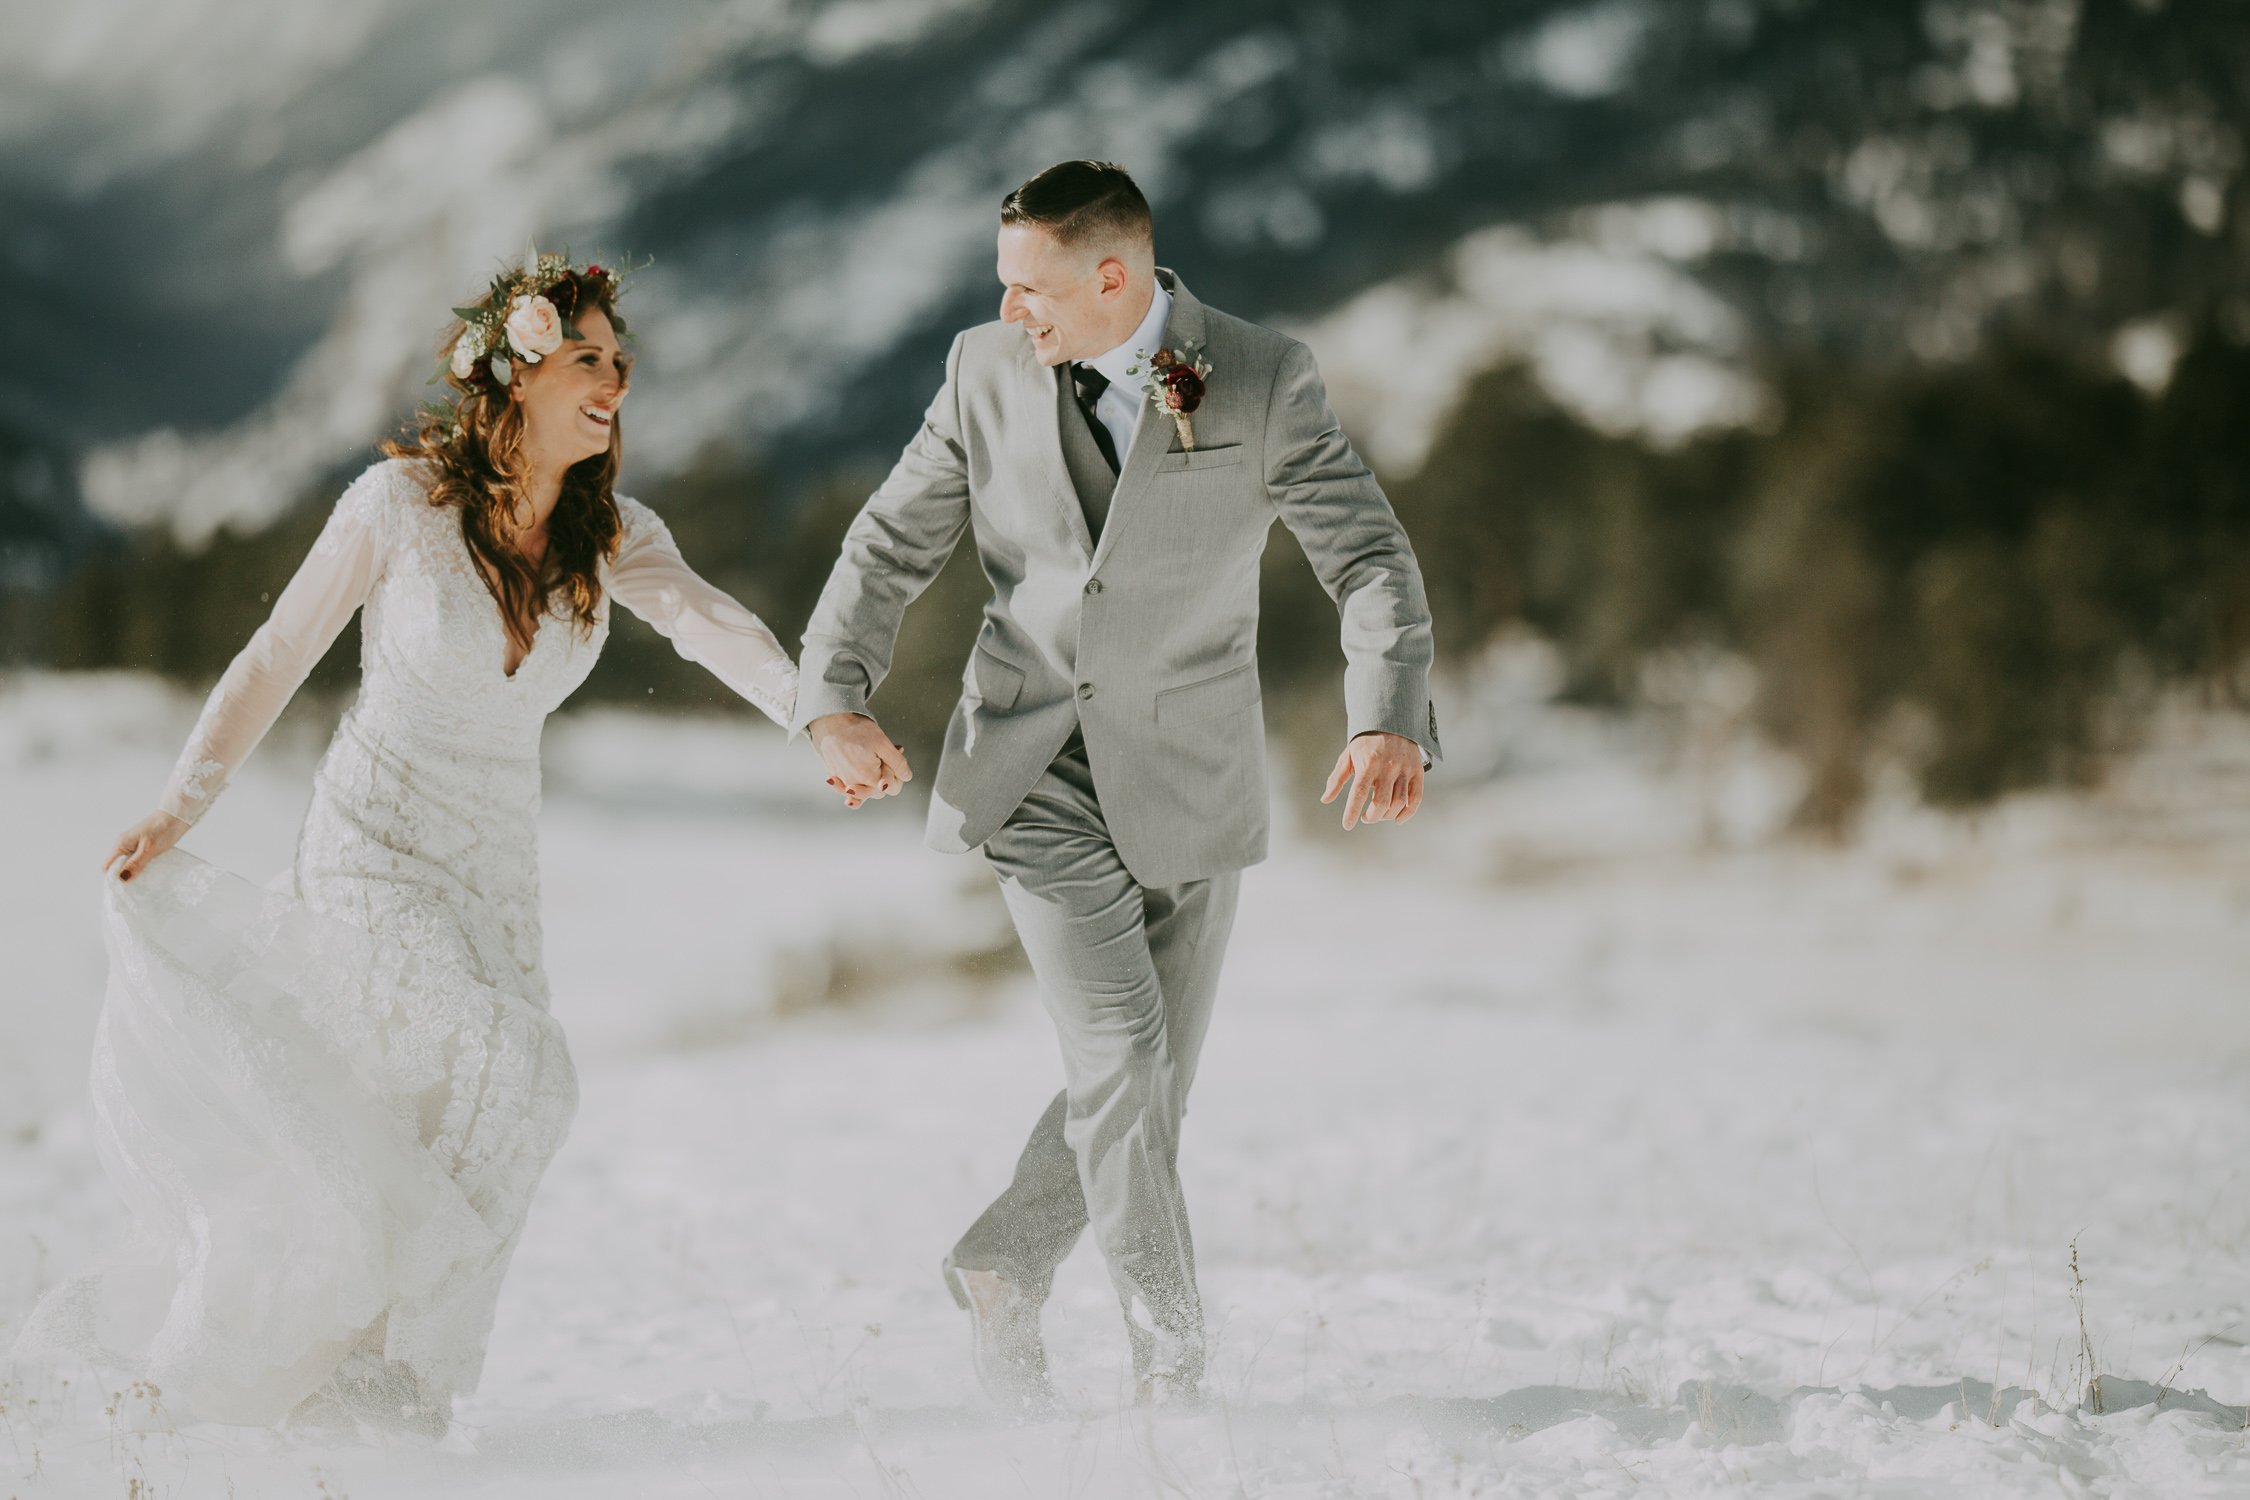 ROCKY MOUNTAIN NATIONAL PARK WINTER ELOPEMENT|SELF-SOLEMNIZING COLORADO ELOPEMENT|SPRAGUE LAKE ELOPEMENT|KELLEY + MATTHEW|INTIMATE WEDDING + ADVENTUROUS ELOPEMENT PHOTOGRAPHER|ADVENTURE WEDDING PHOTOGRAPHER| SELF-SOLEMNIZING COLORADO ELOPEMENT PHOTOGRAPHER